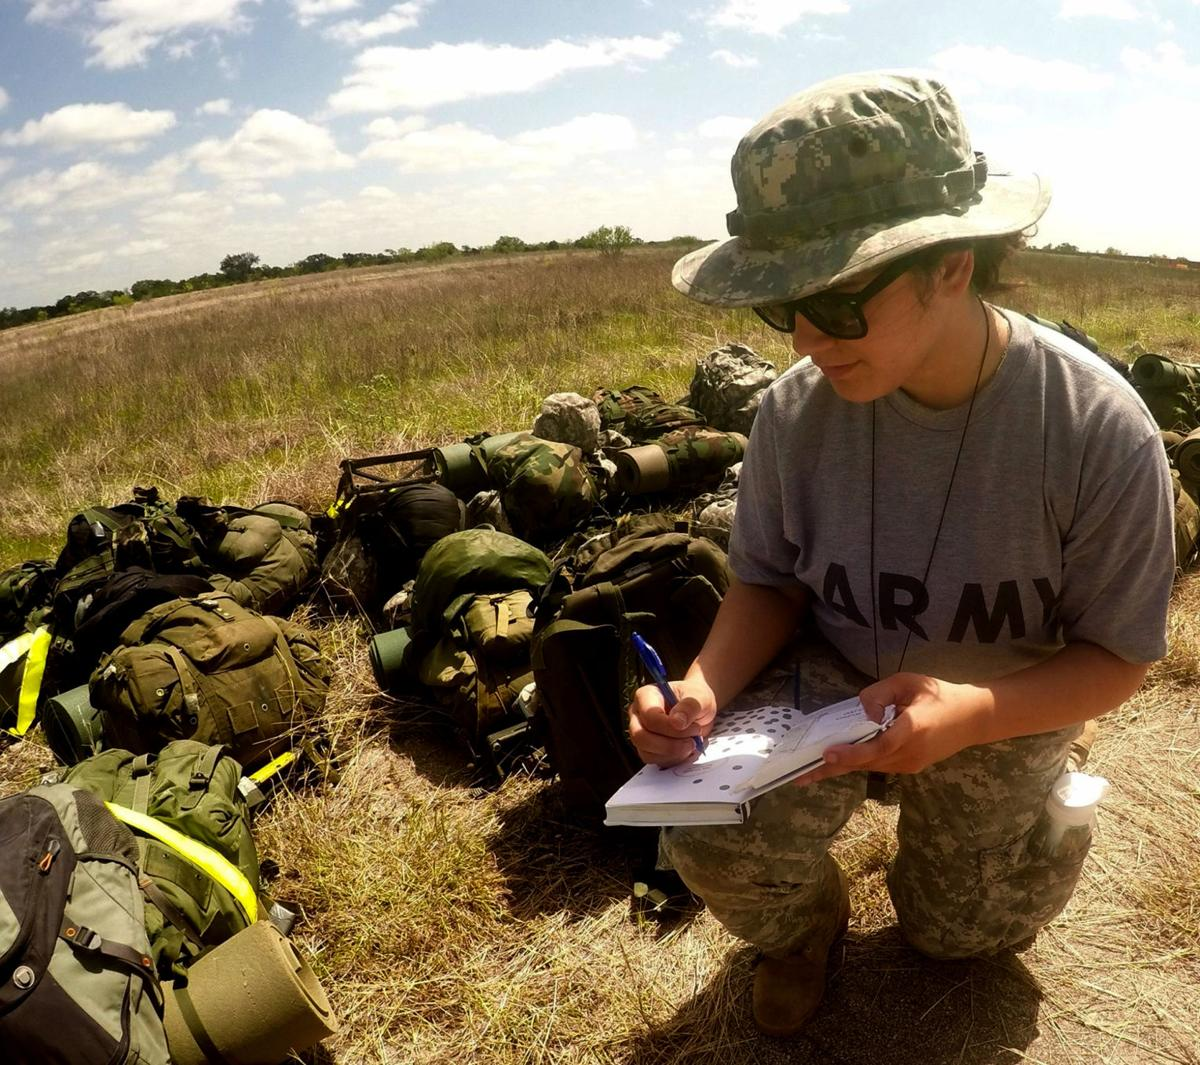 Fighting for life experience with ROTC